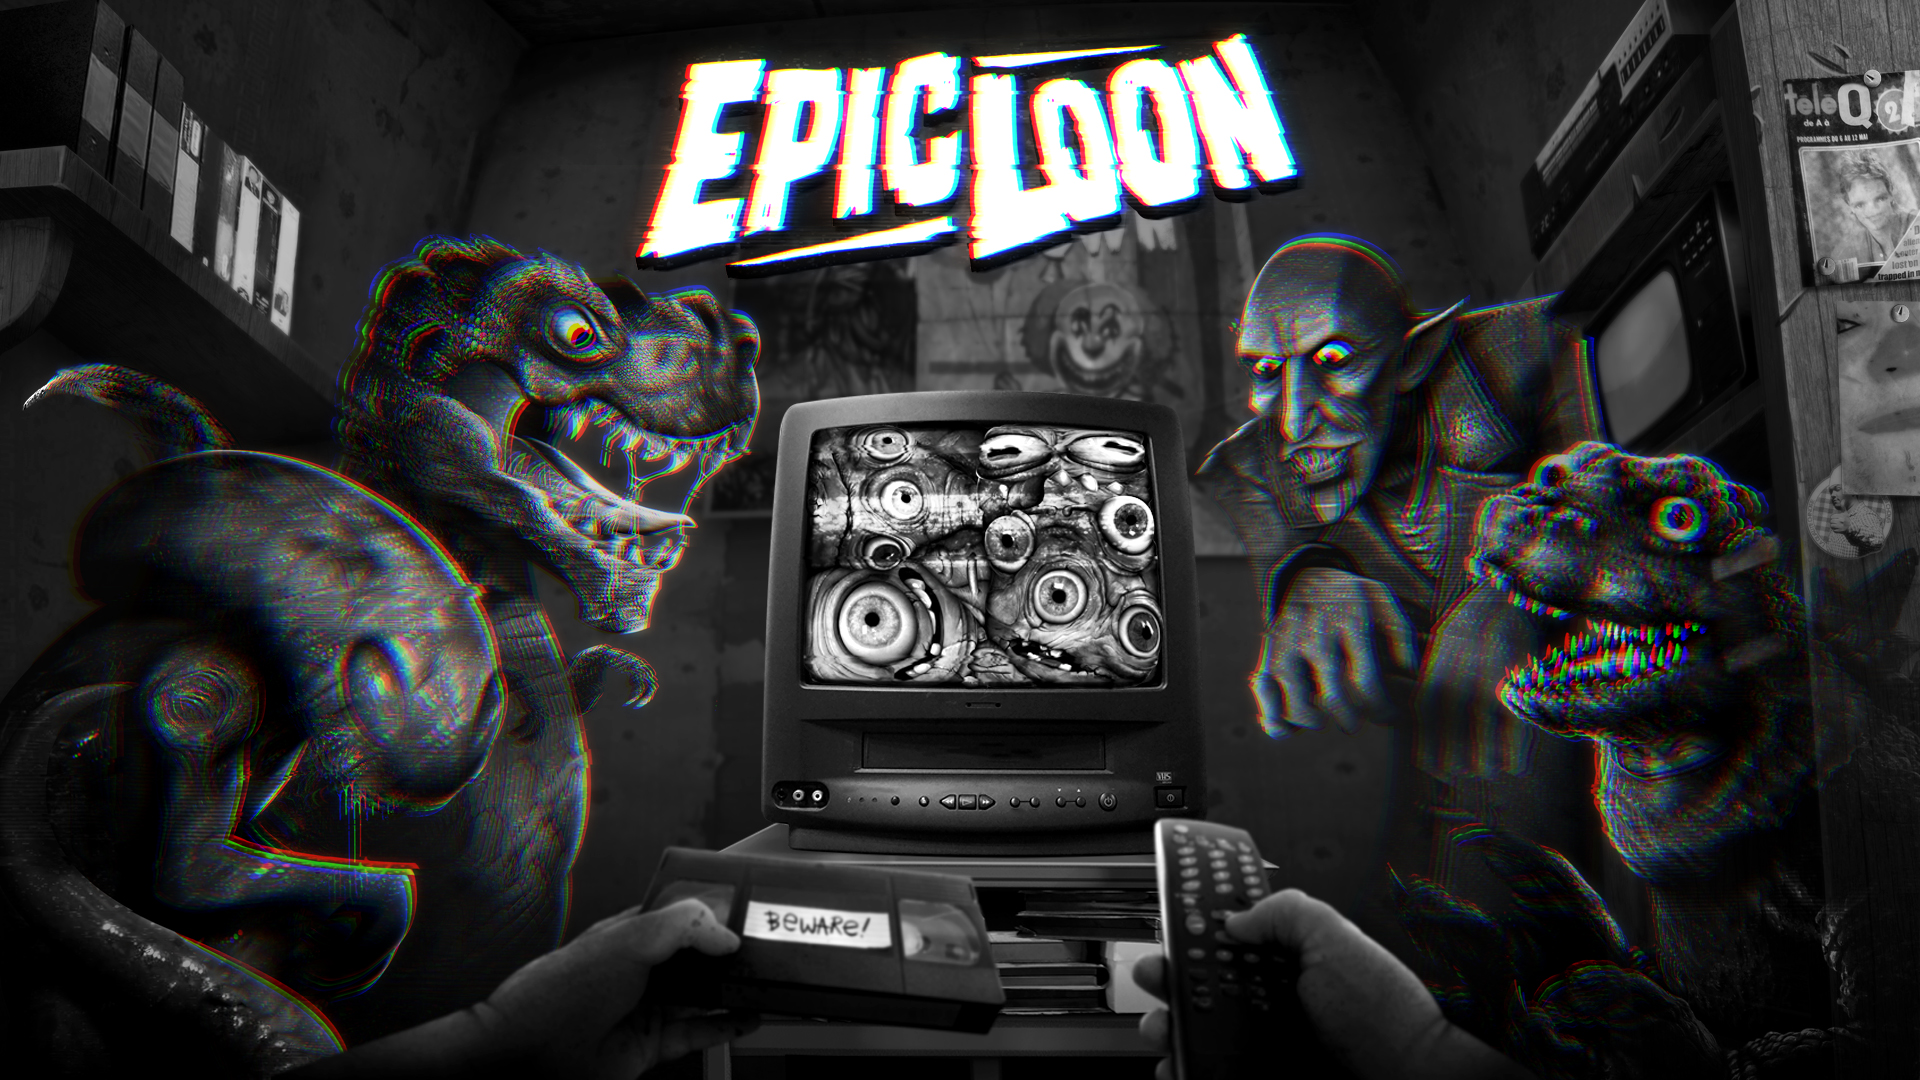 EpicLoon